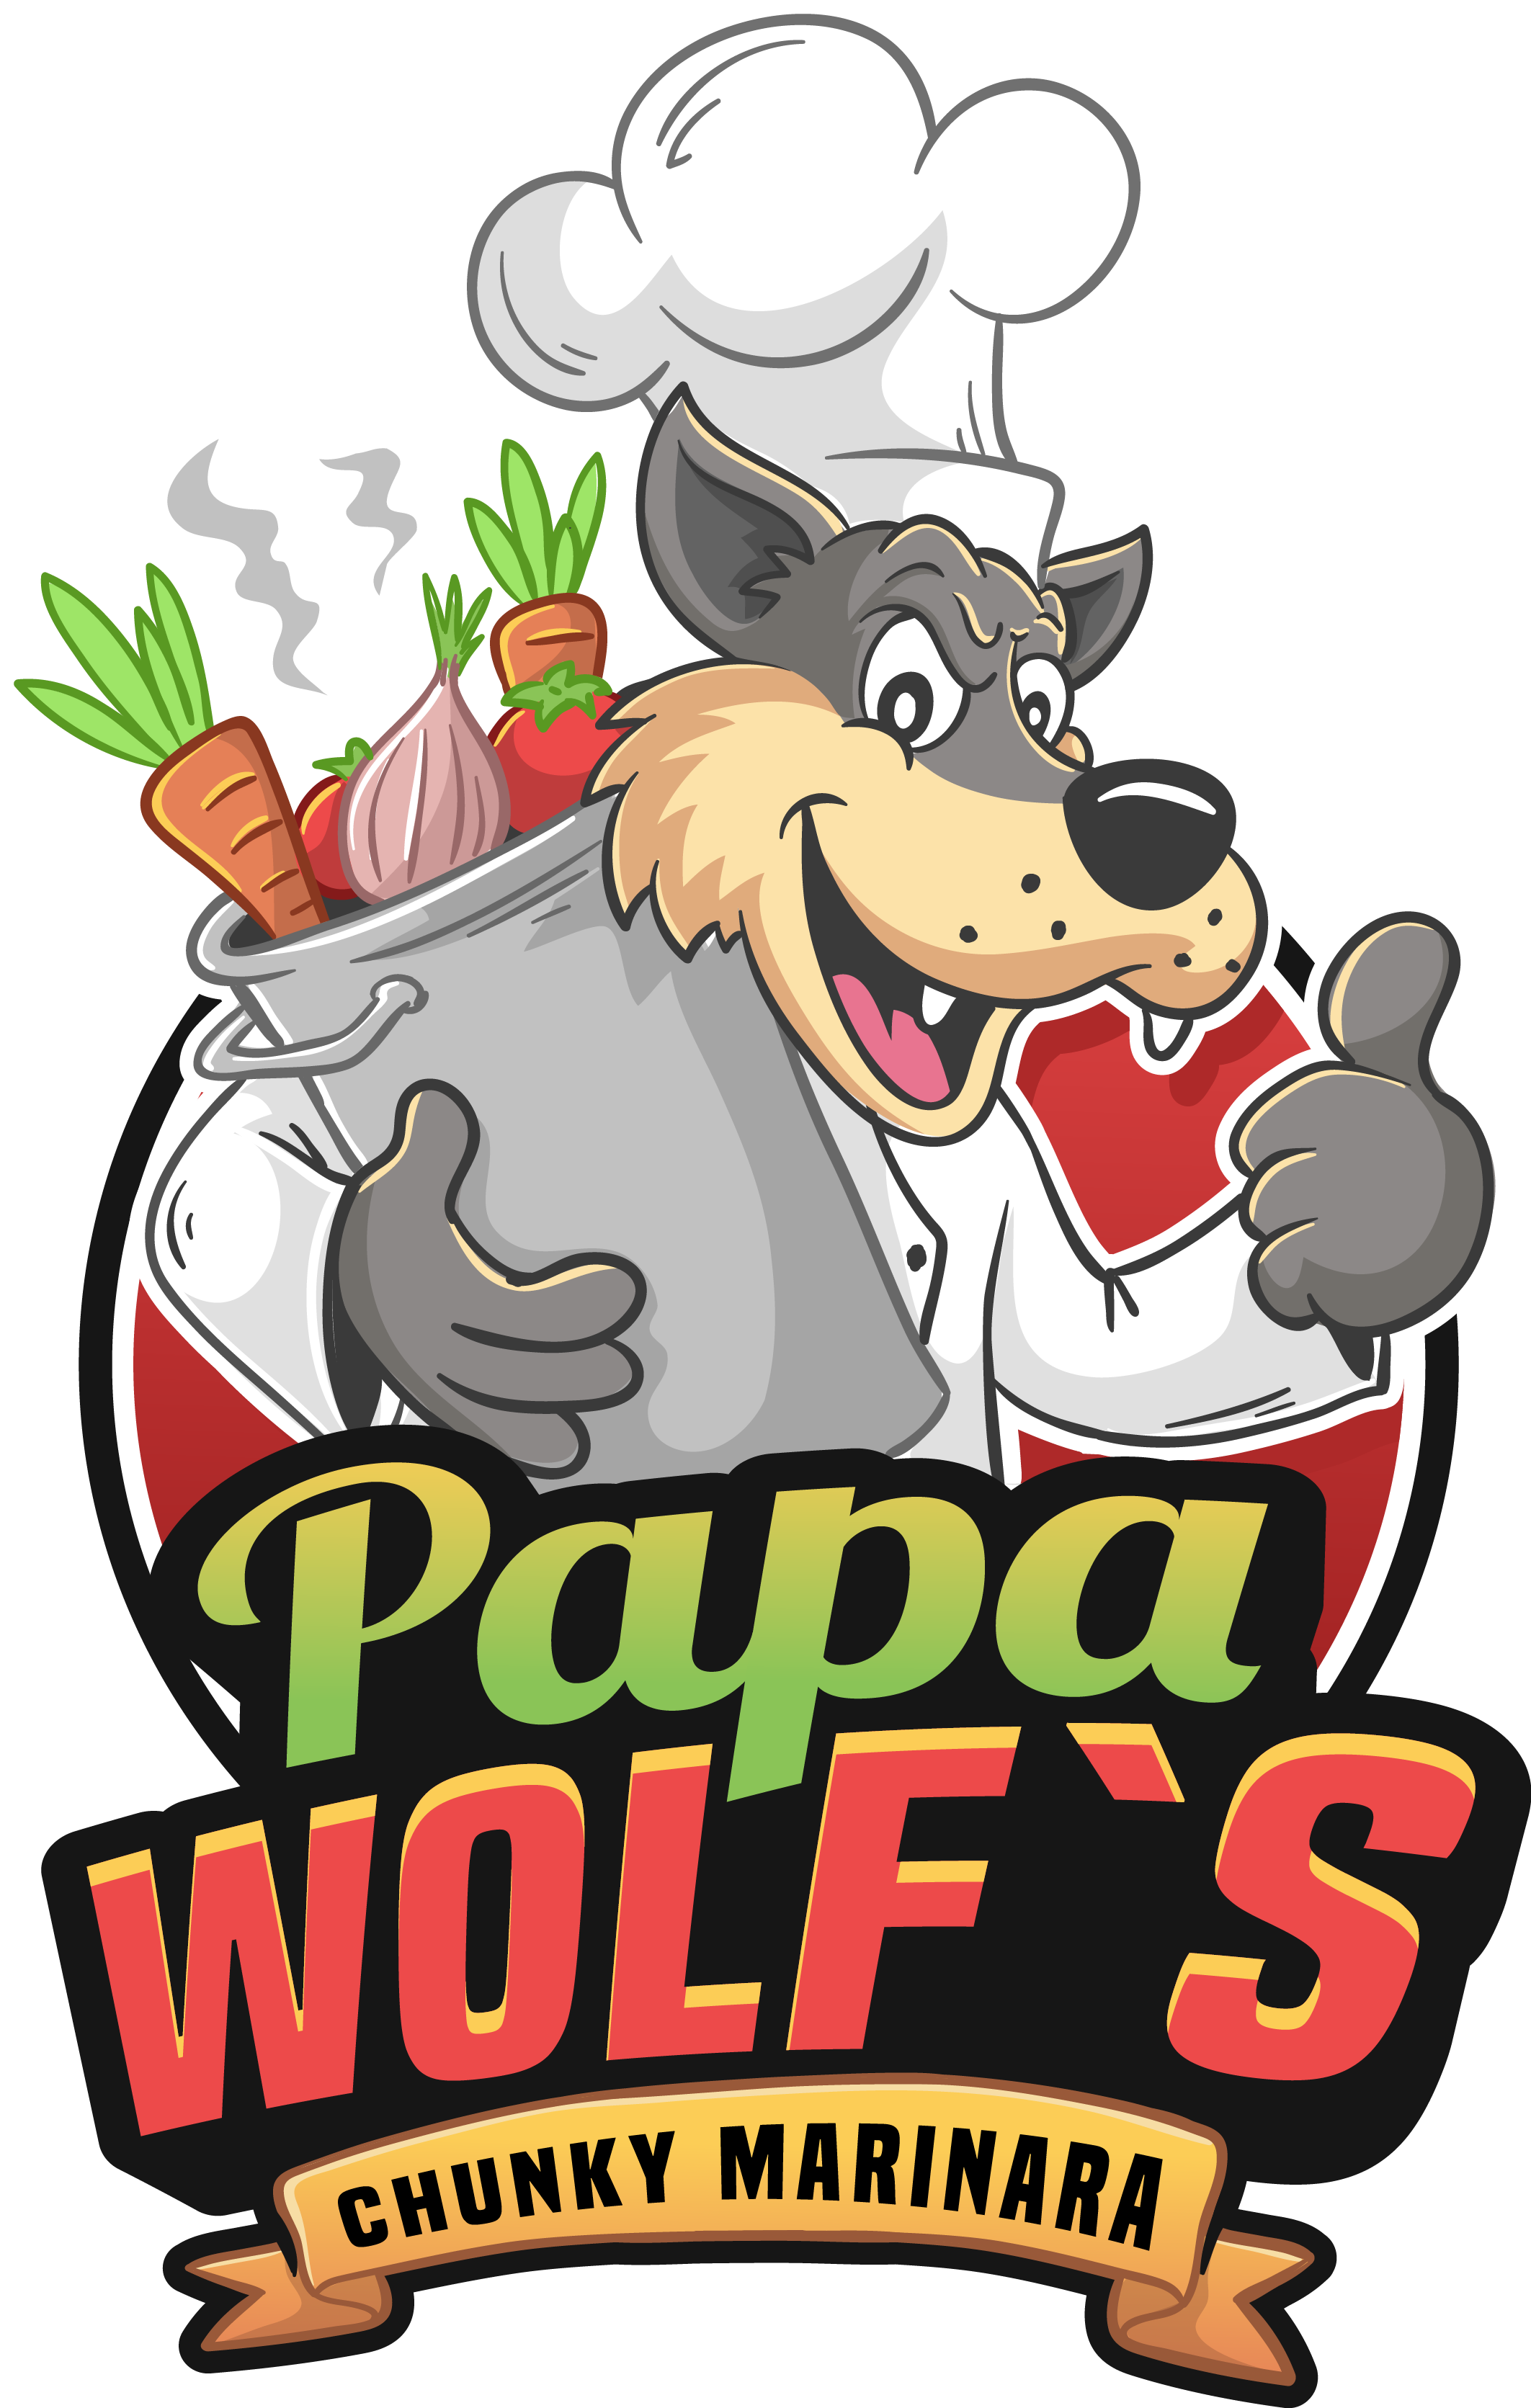 Cool Wolf design for new Italian line of food products for supermarkets